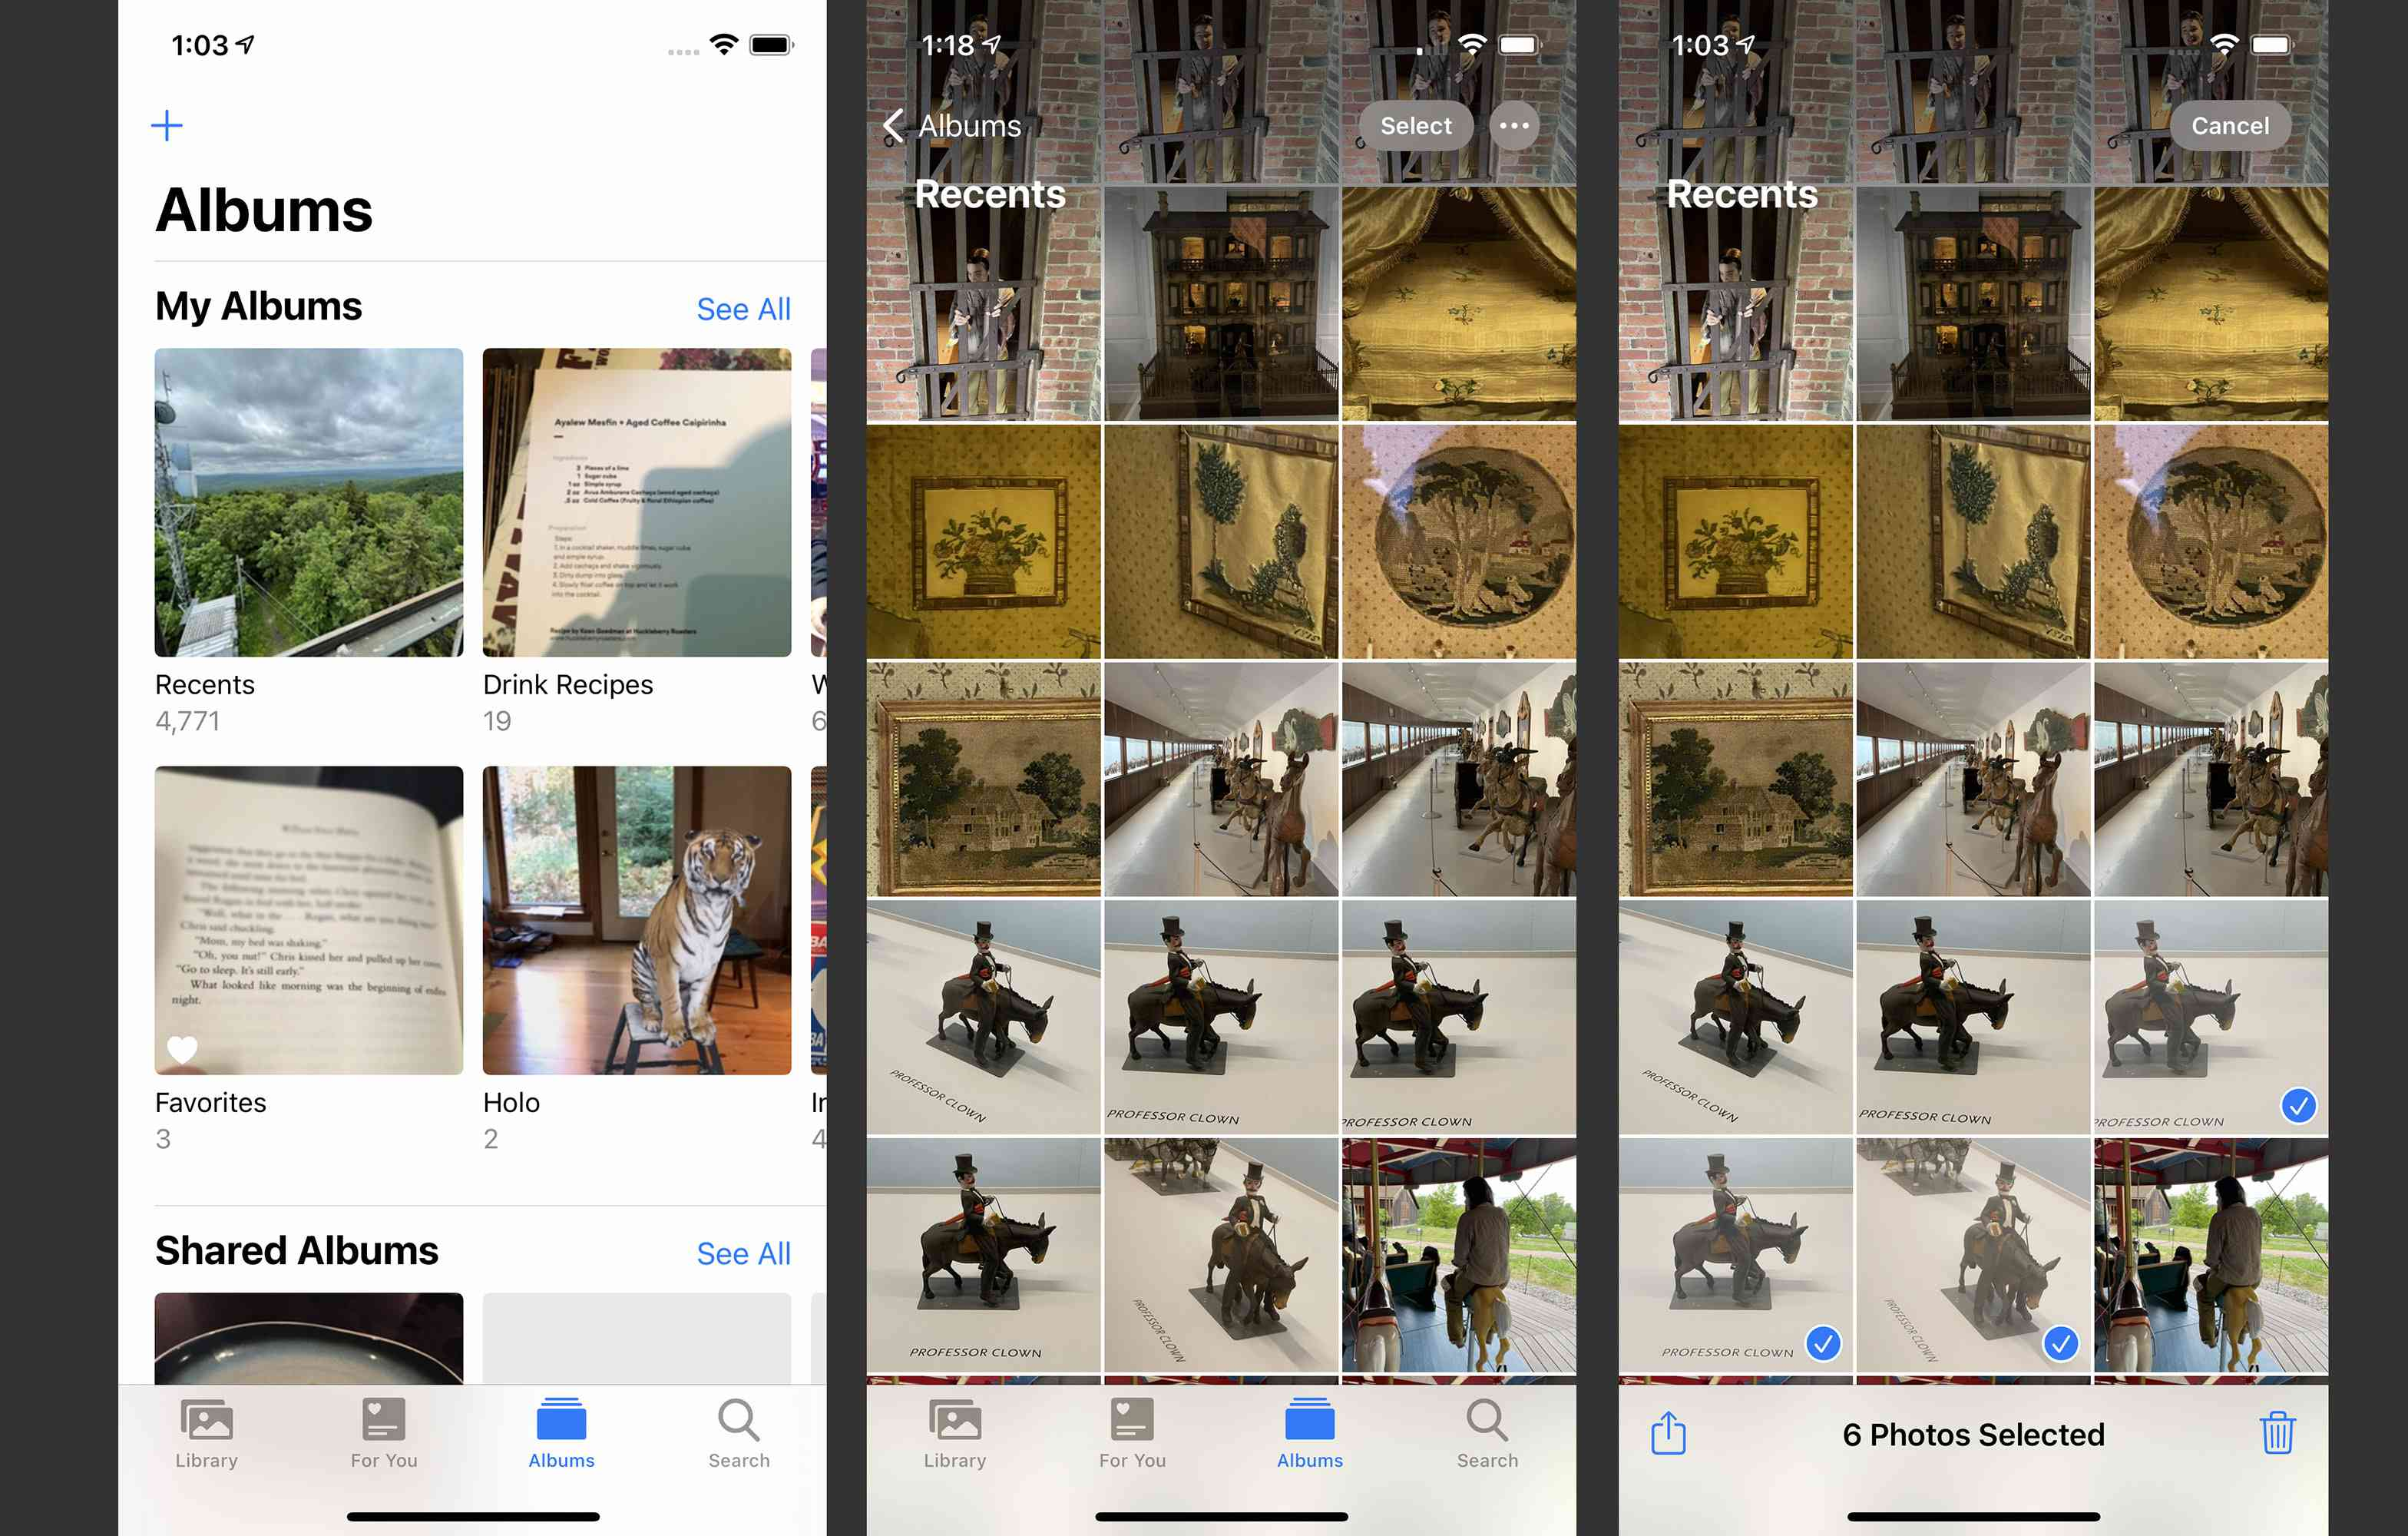 Screenshots of how to select photos for sharing on iPhone